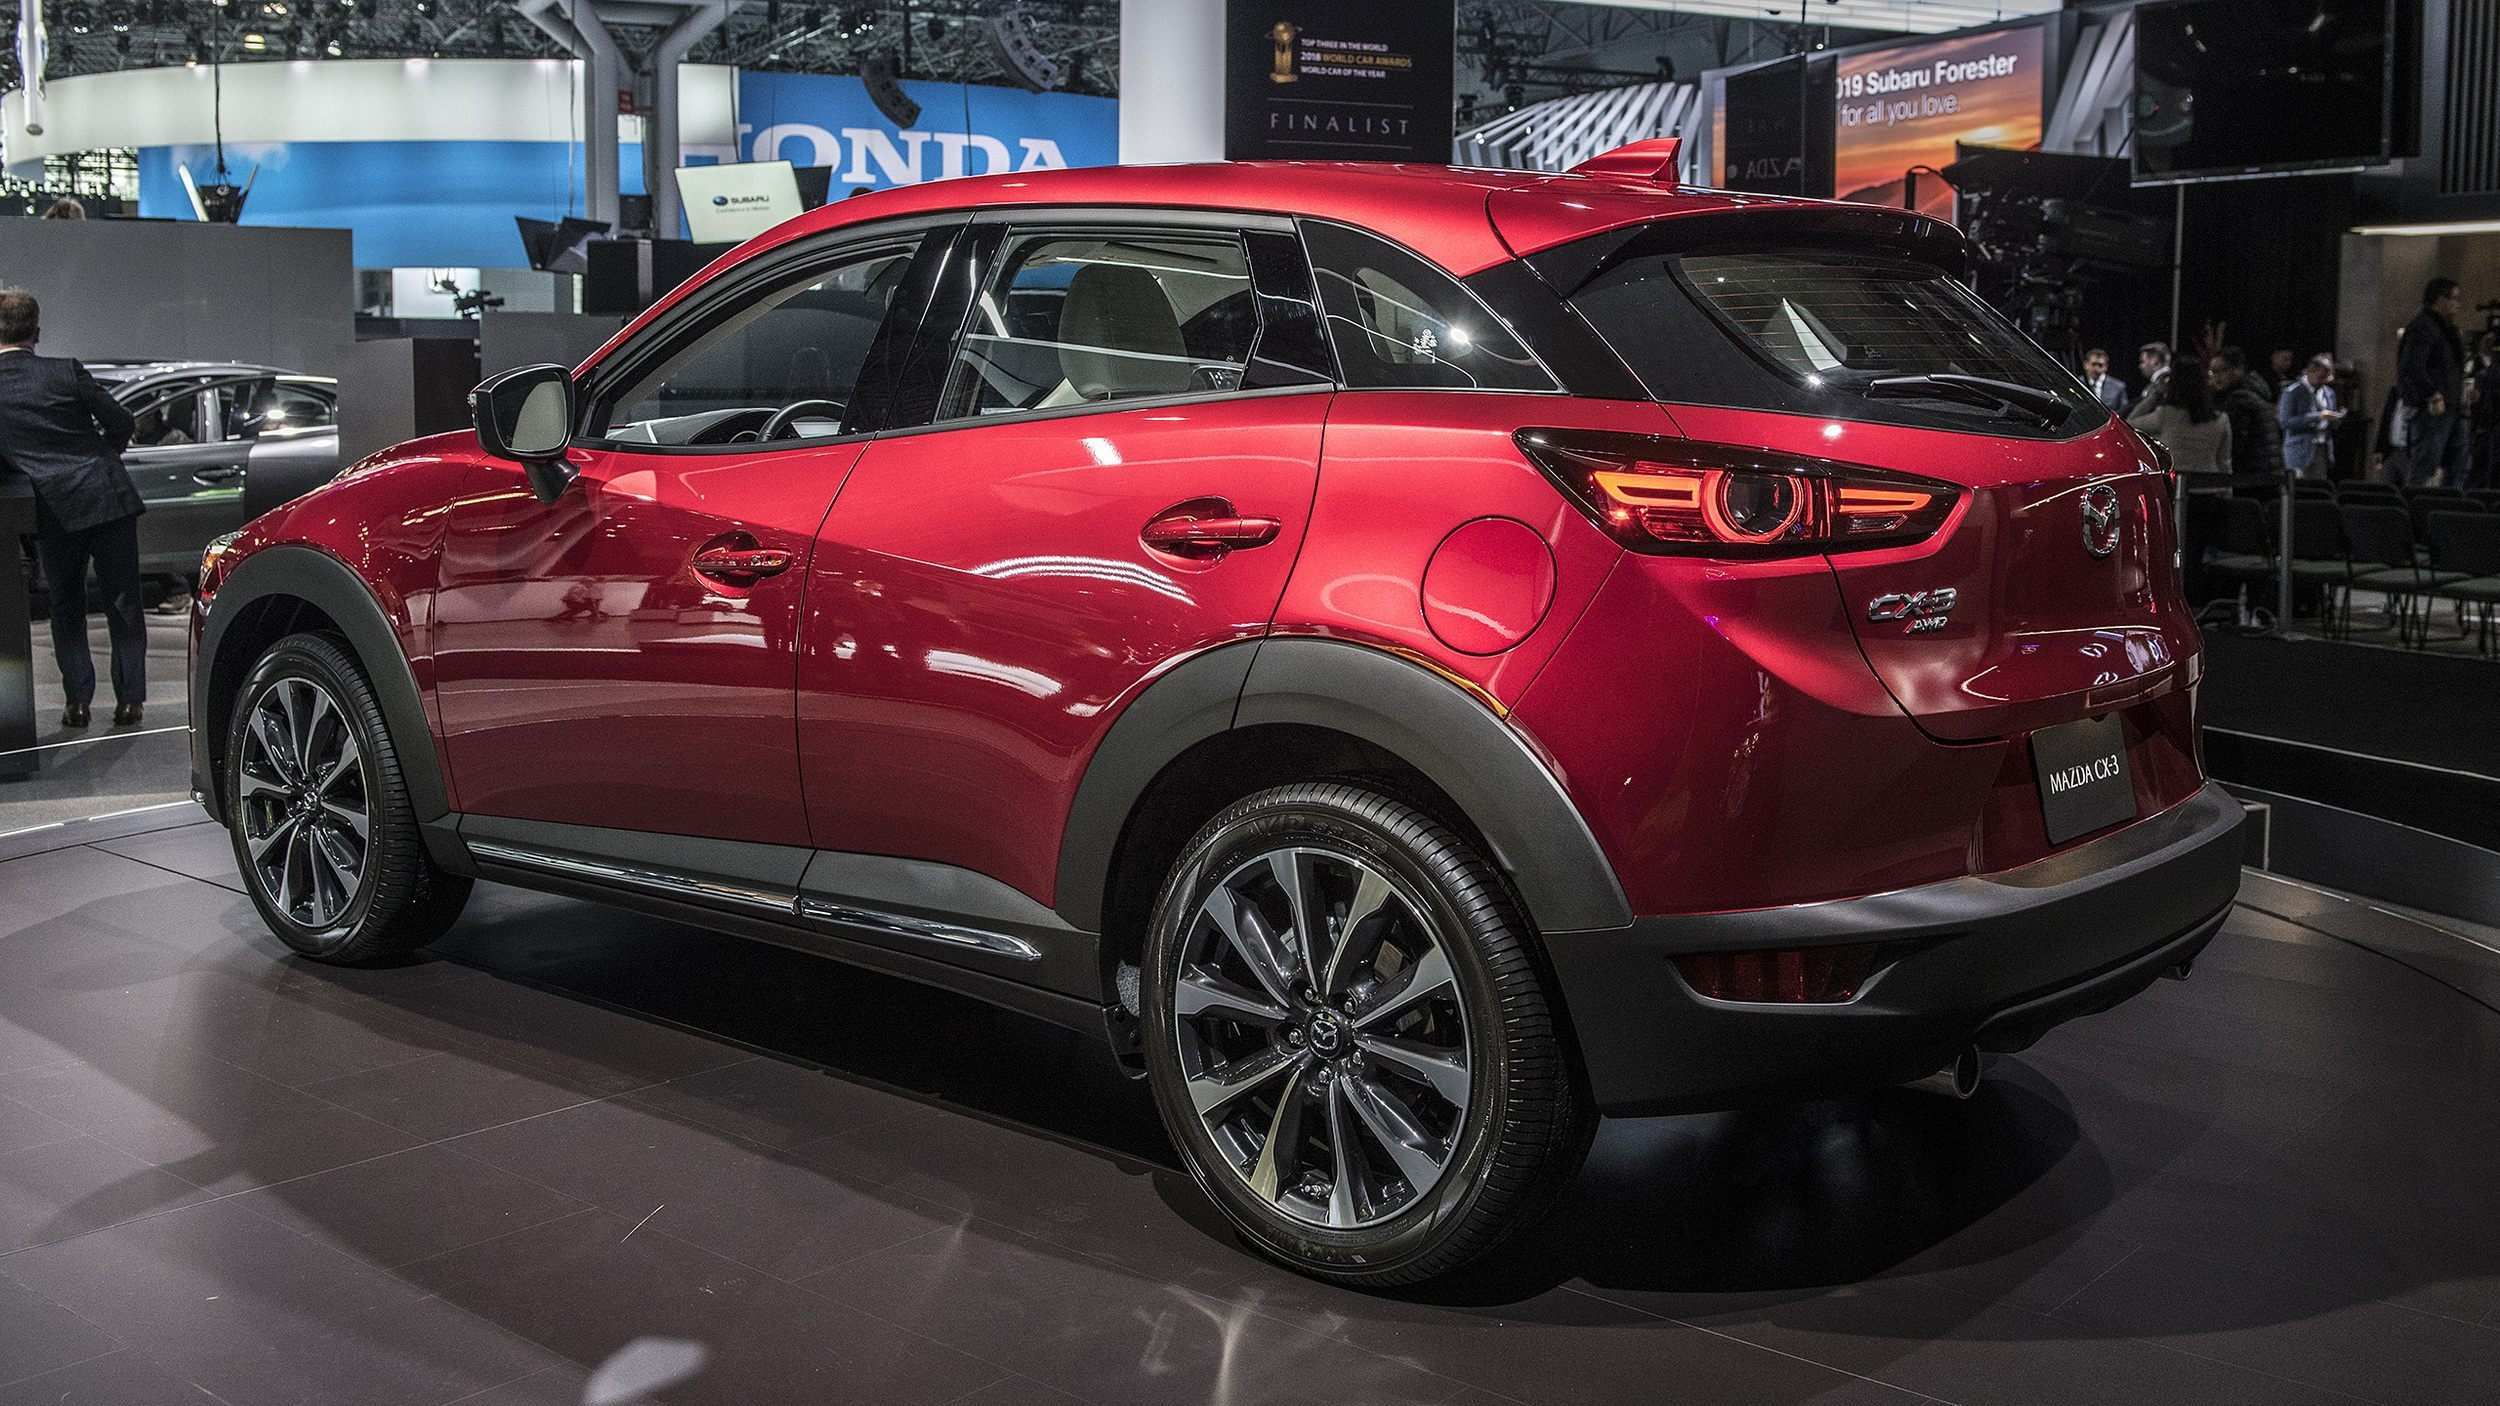 52 The 2020 Mazda CX 3 Price Design And Review